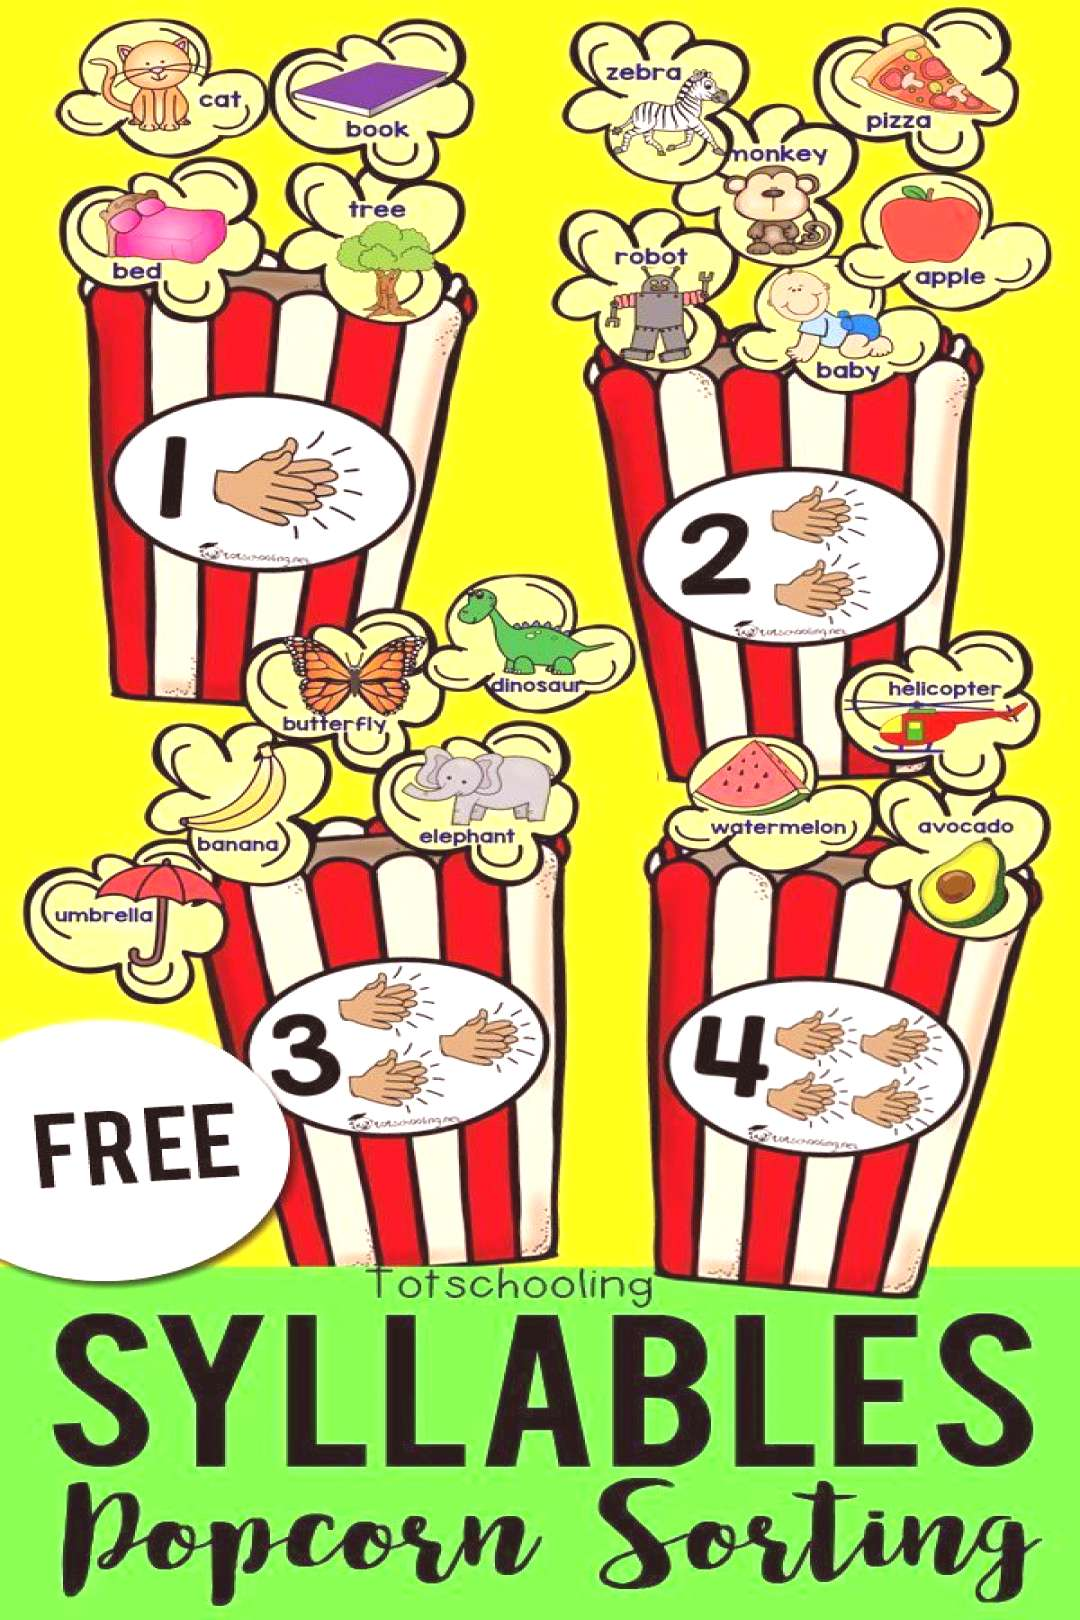 FREE printable sorting activity for preschool and kindergarten kids to sort syllables with a fun po